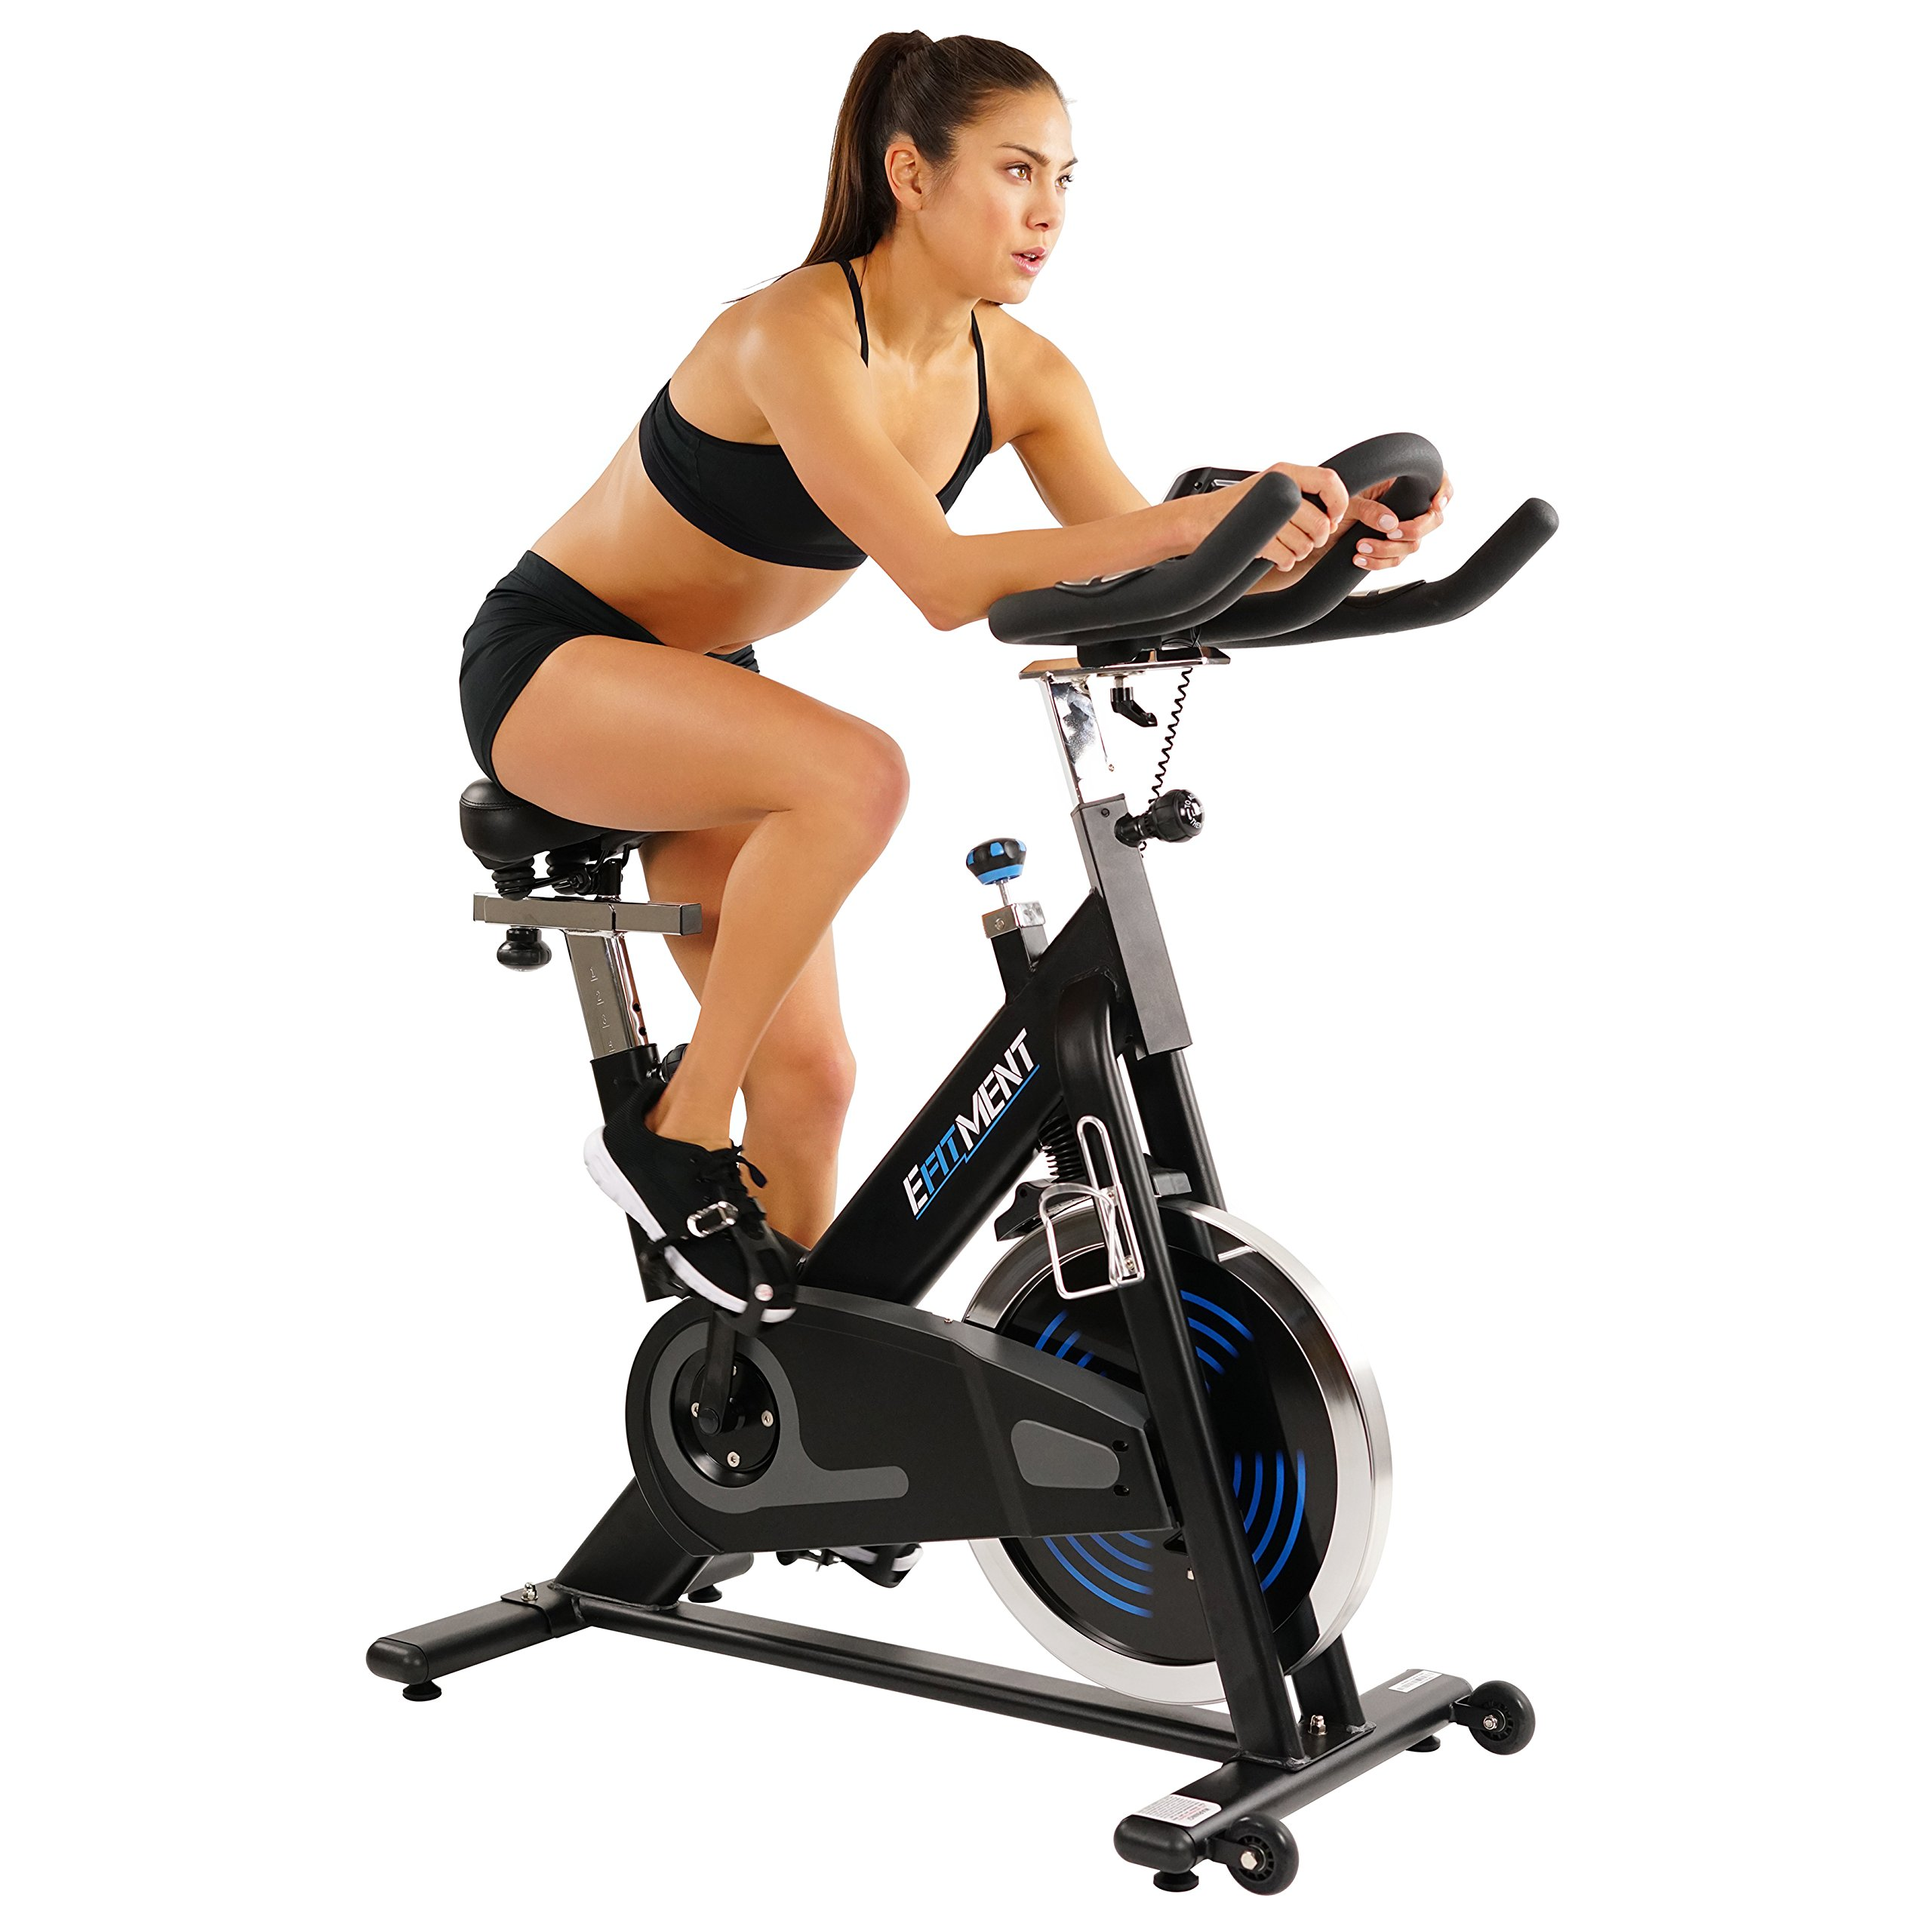 Indoor Cycle Bike, Magnetic Cycling Trainer Exercise Bike w/ 40 lb Flywheel, Belt Drive and LCD Monitor by EFITMENT - IC031